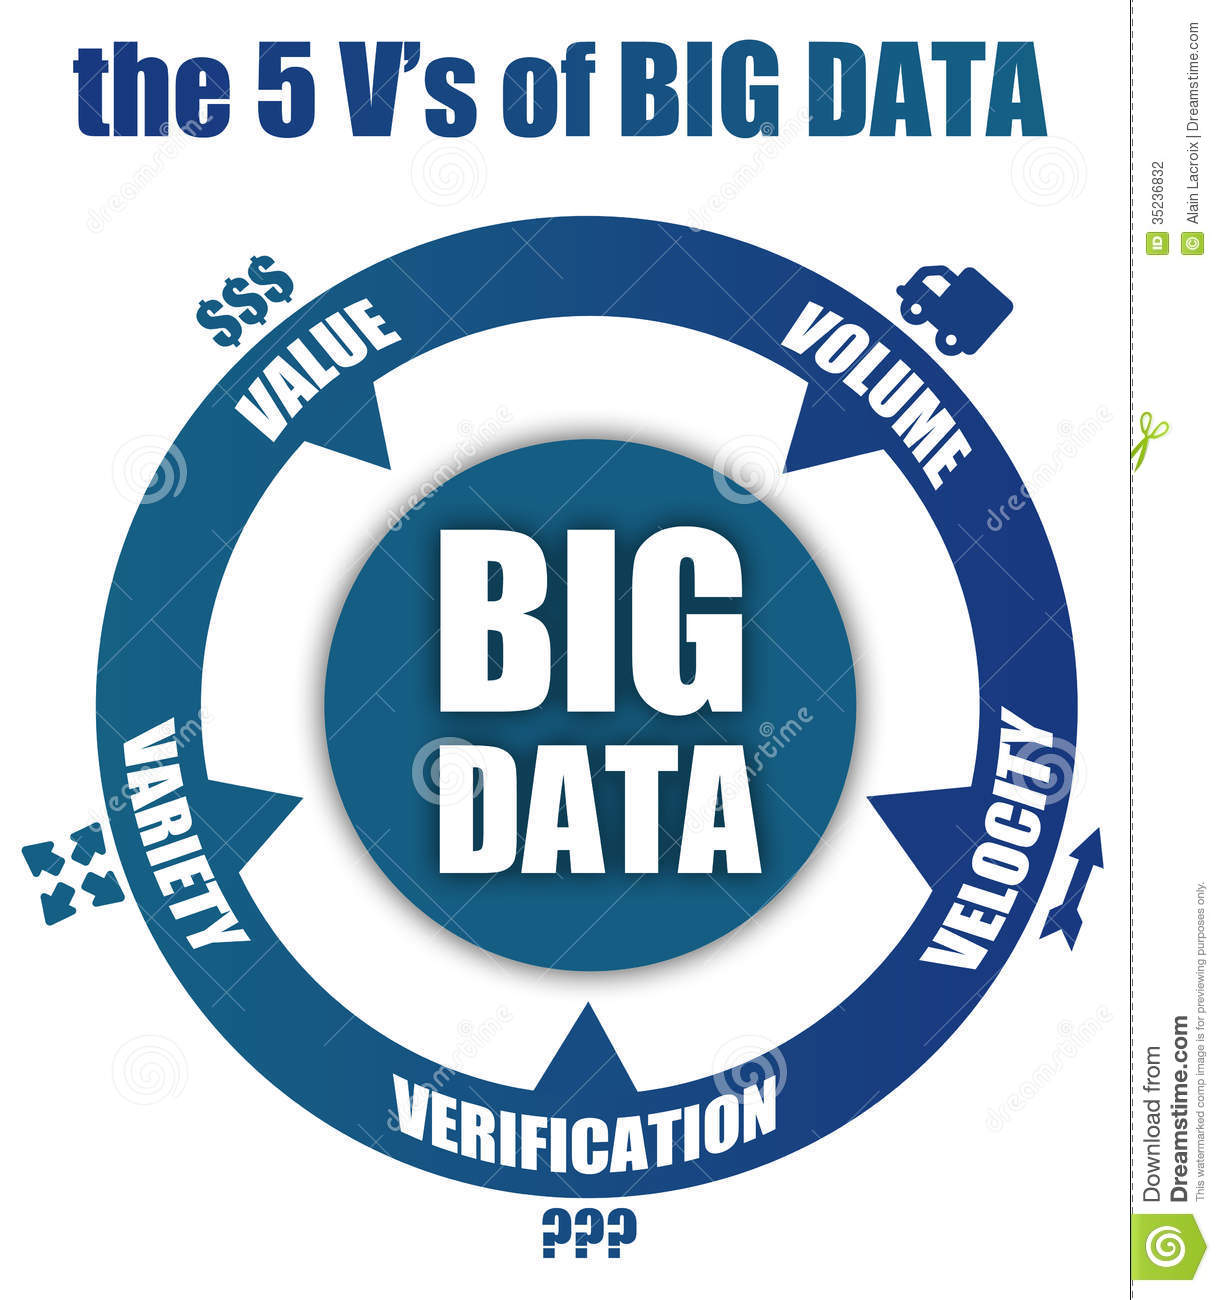 application of big data Big data is a popular new catchphrase in the realm of information technology and quantitative methods that refer to the collection and analysis of massive amounts of information advances in computing power along with falling prices thereof are making big data projects increasingly more technically feasible and economic.